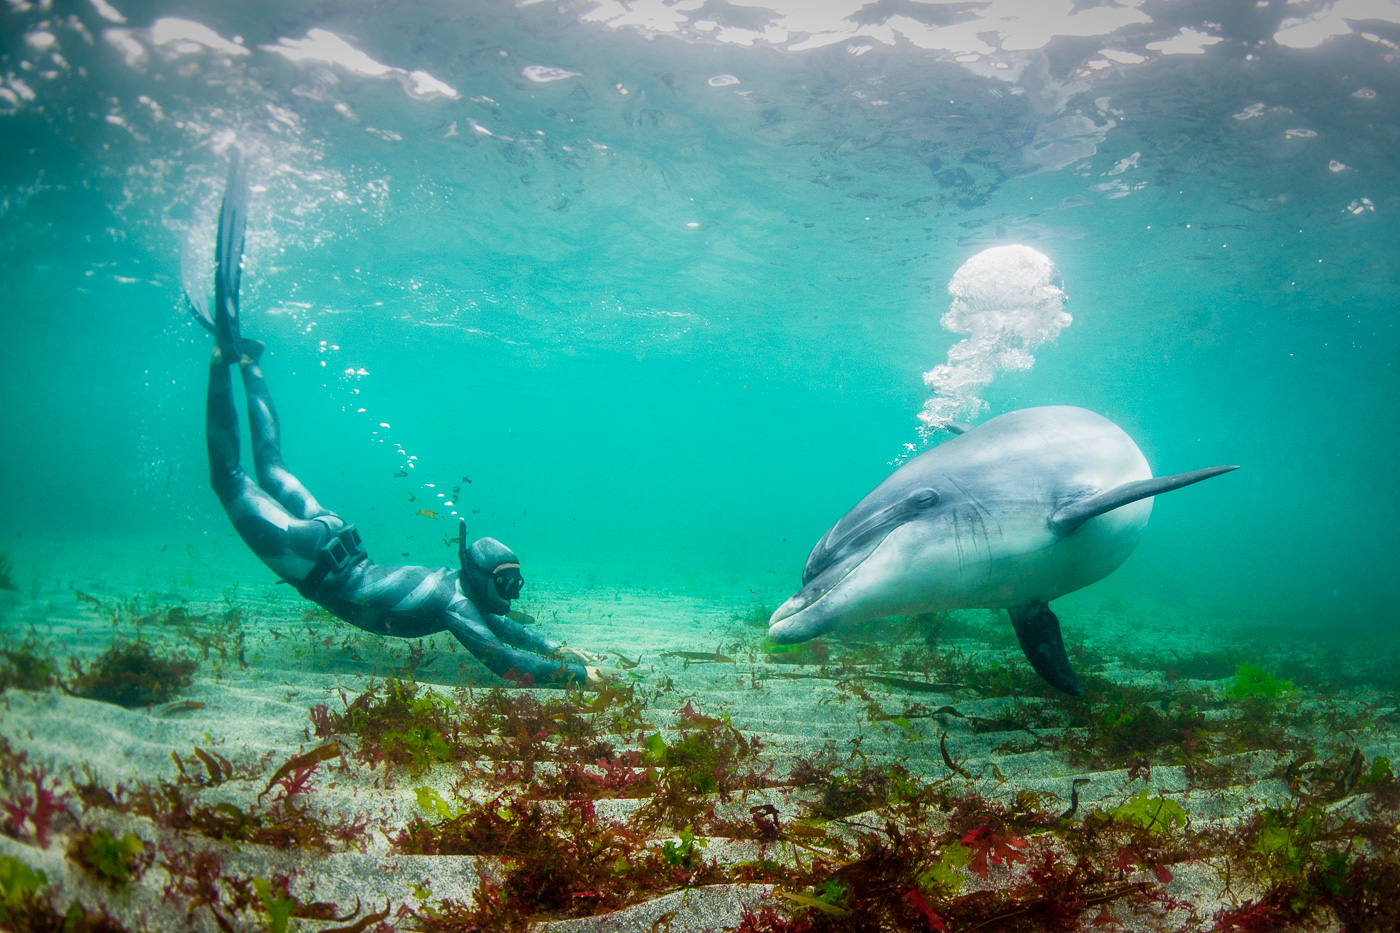 human interaction with wild dolphin underwater